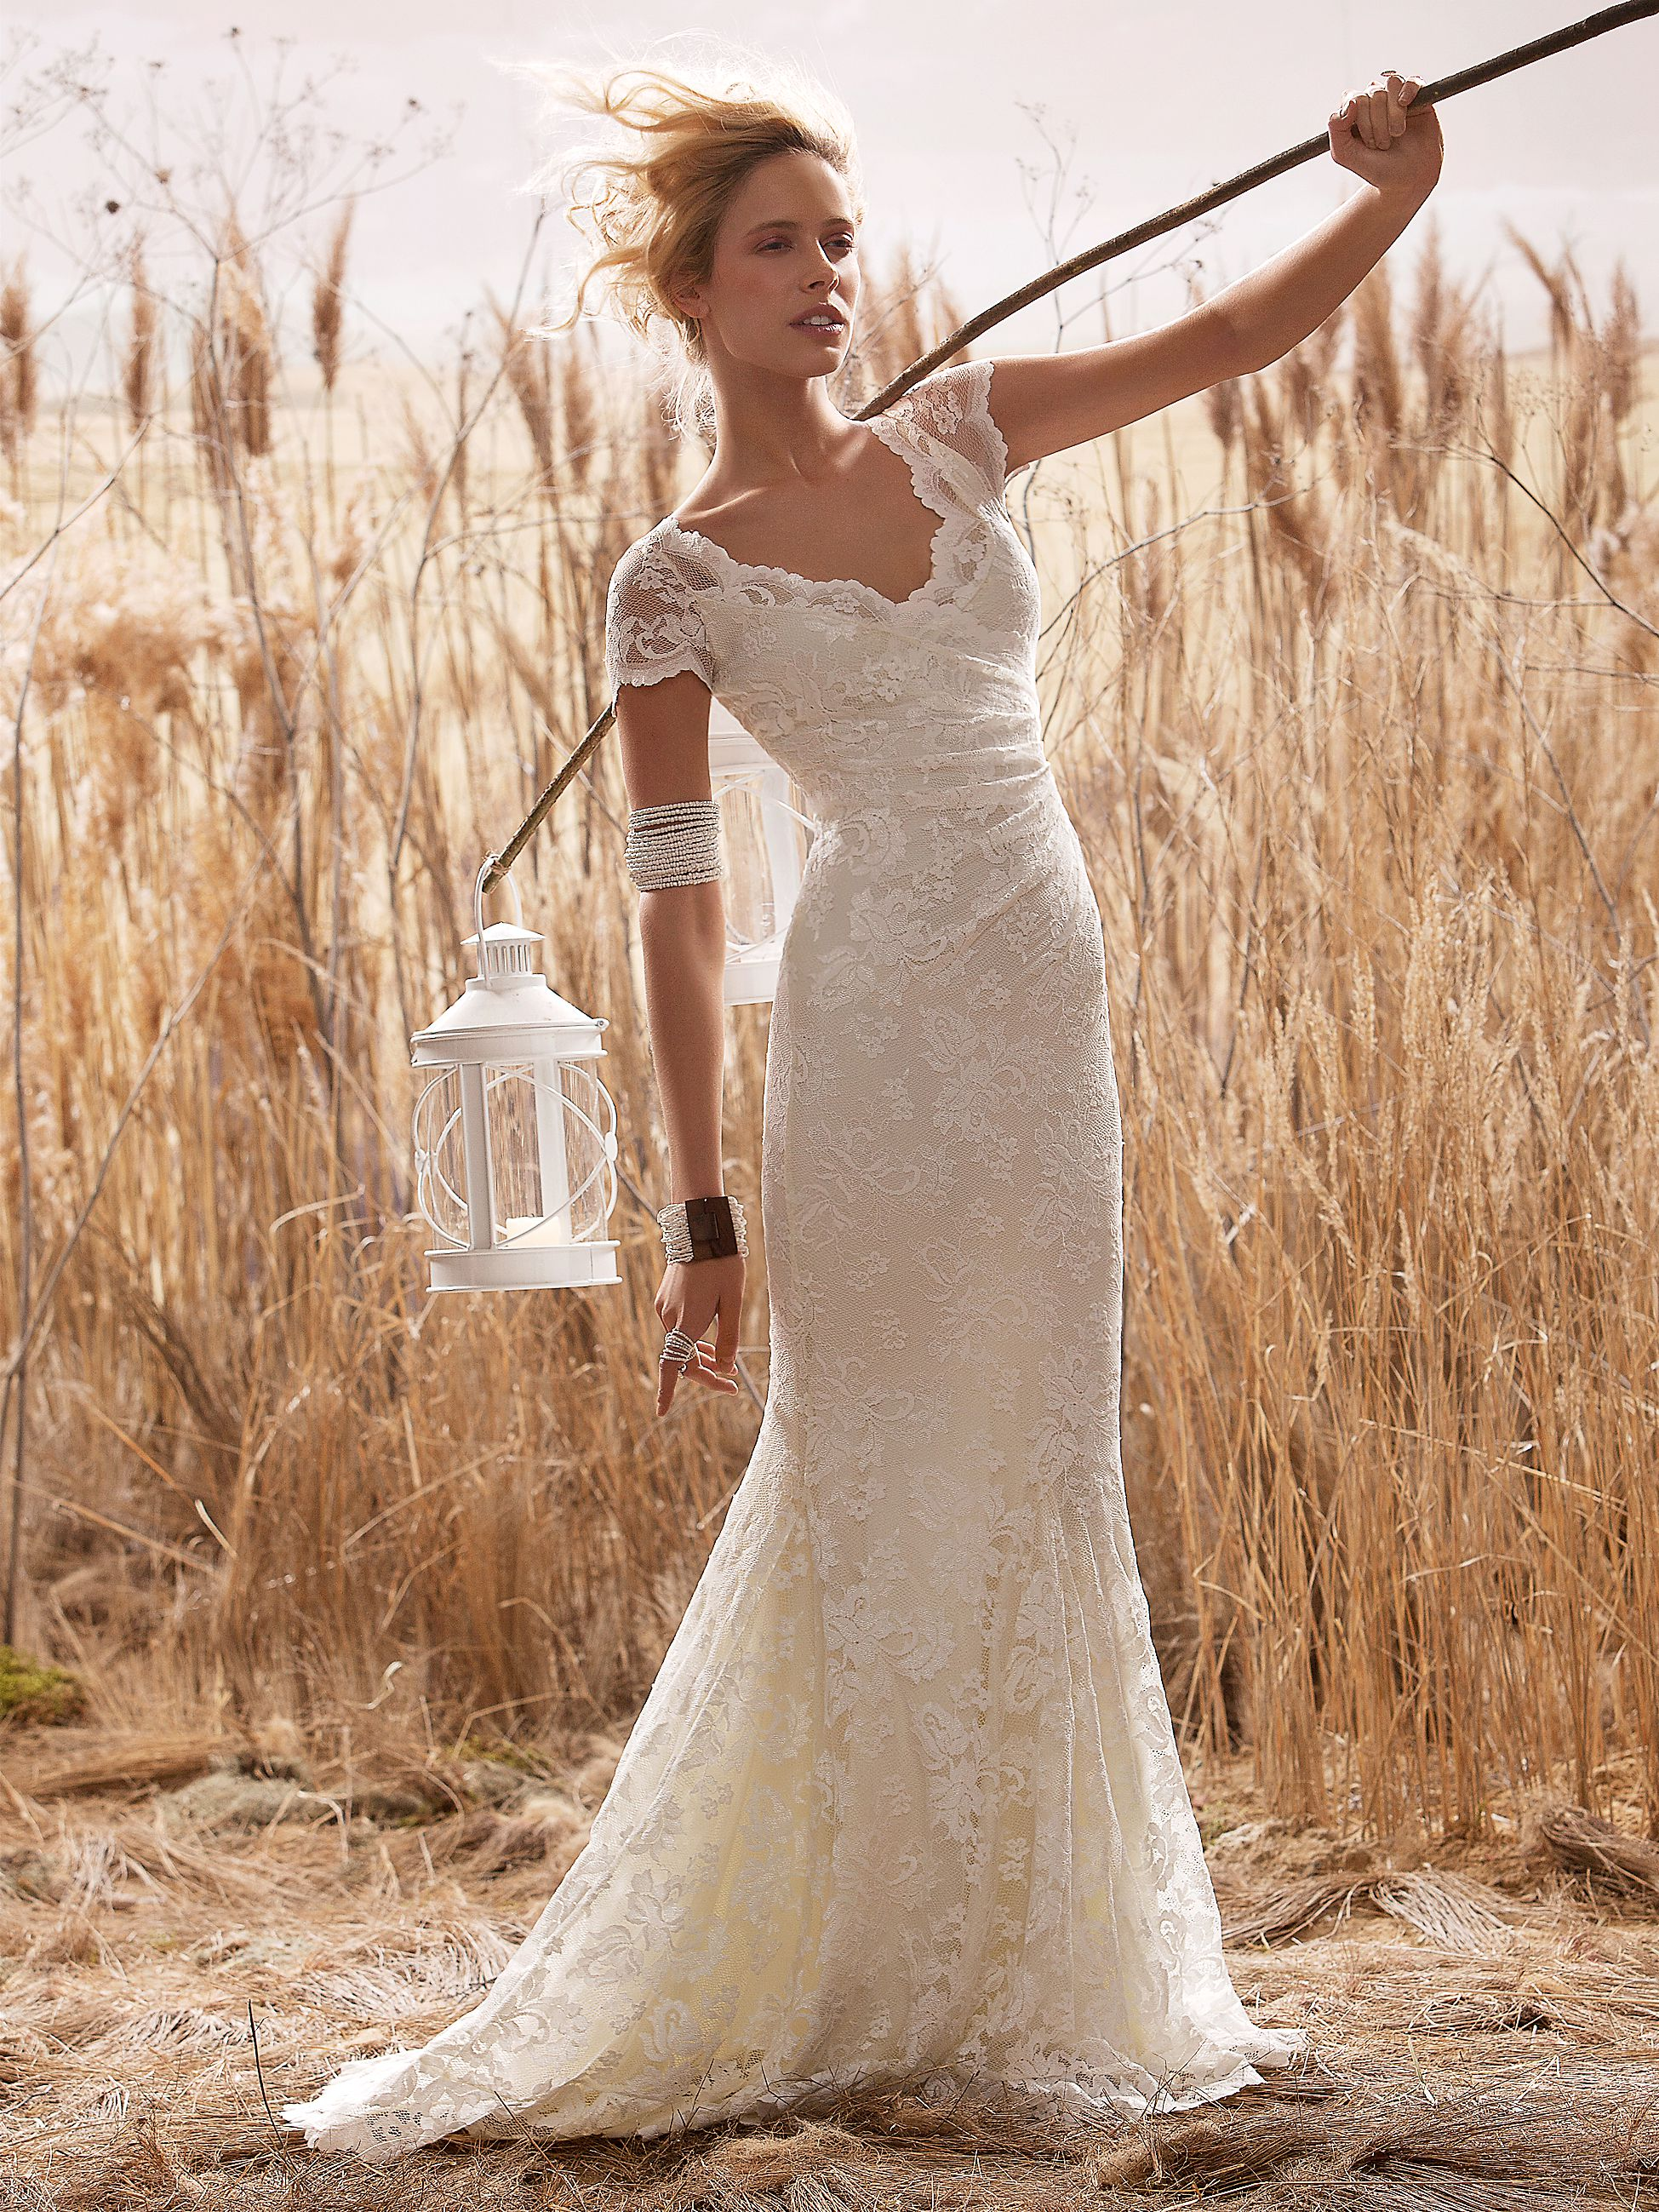 Wedding Gowns From Olvi\'s - Rustic Wedding Chic